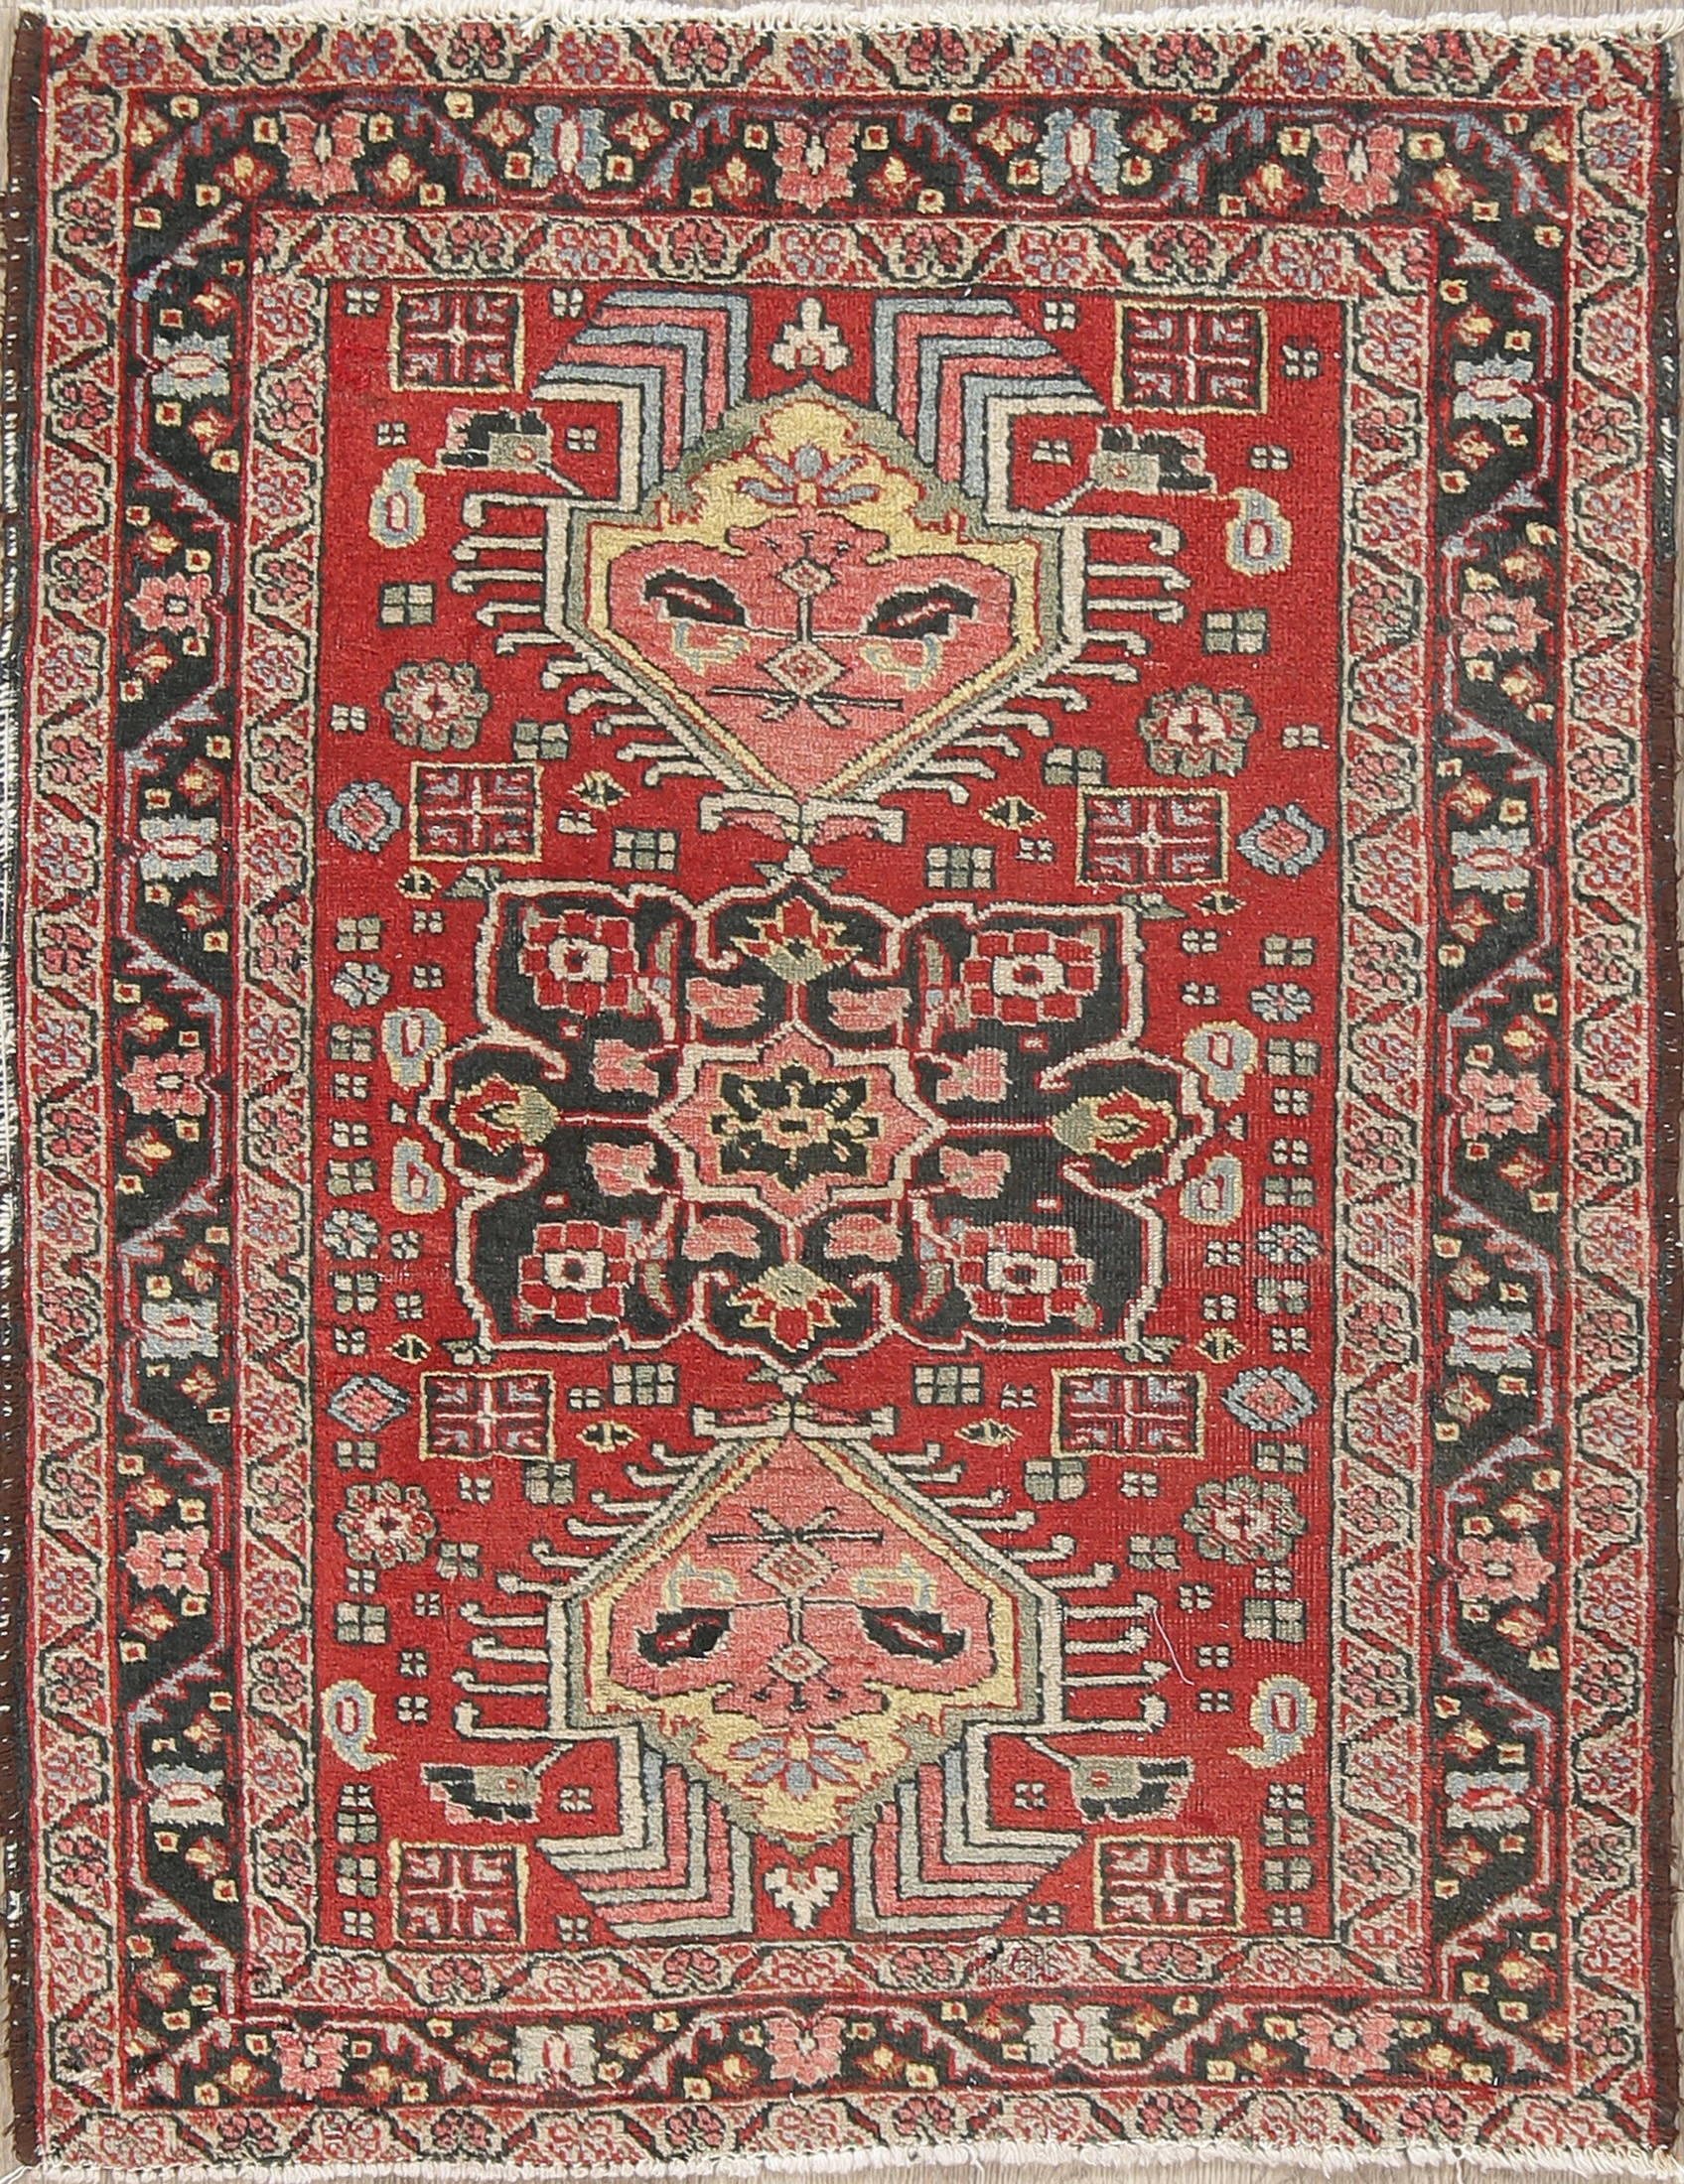 Antique Geometric Red Heriz Persian Hand-Knotted 3x4 Wool Rug